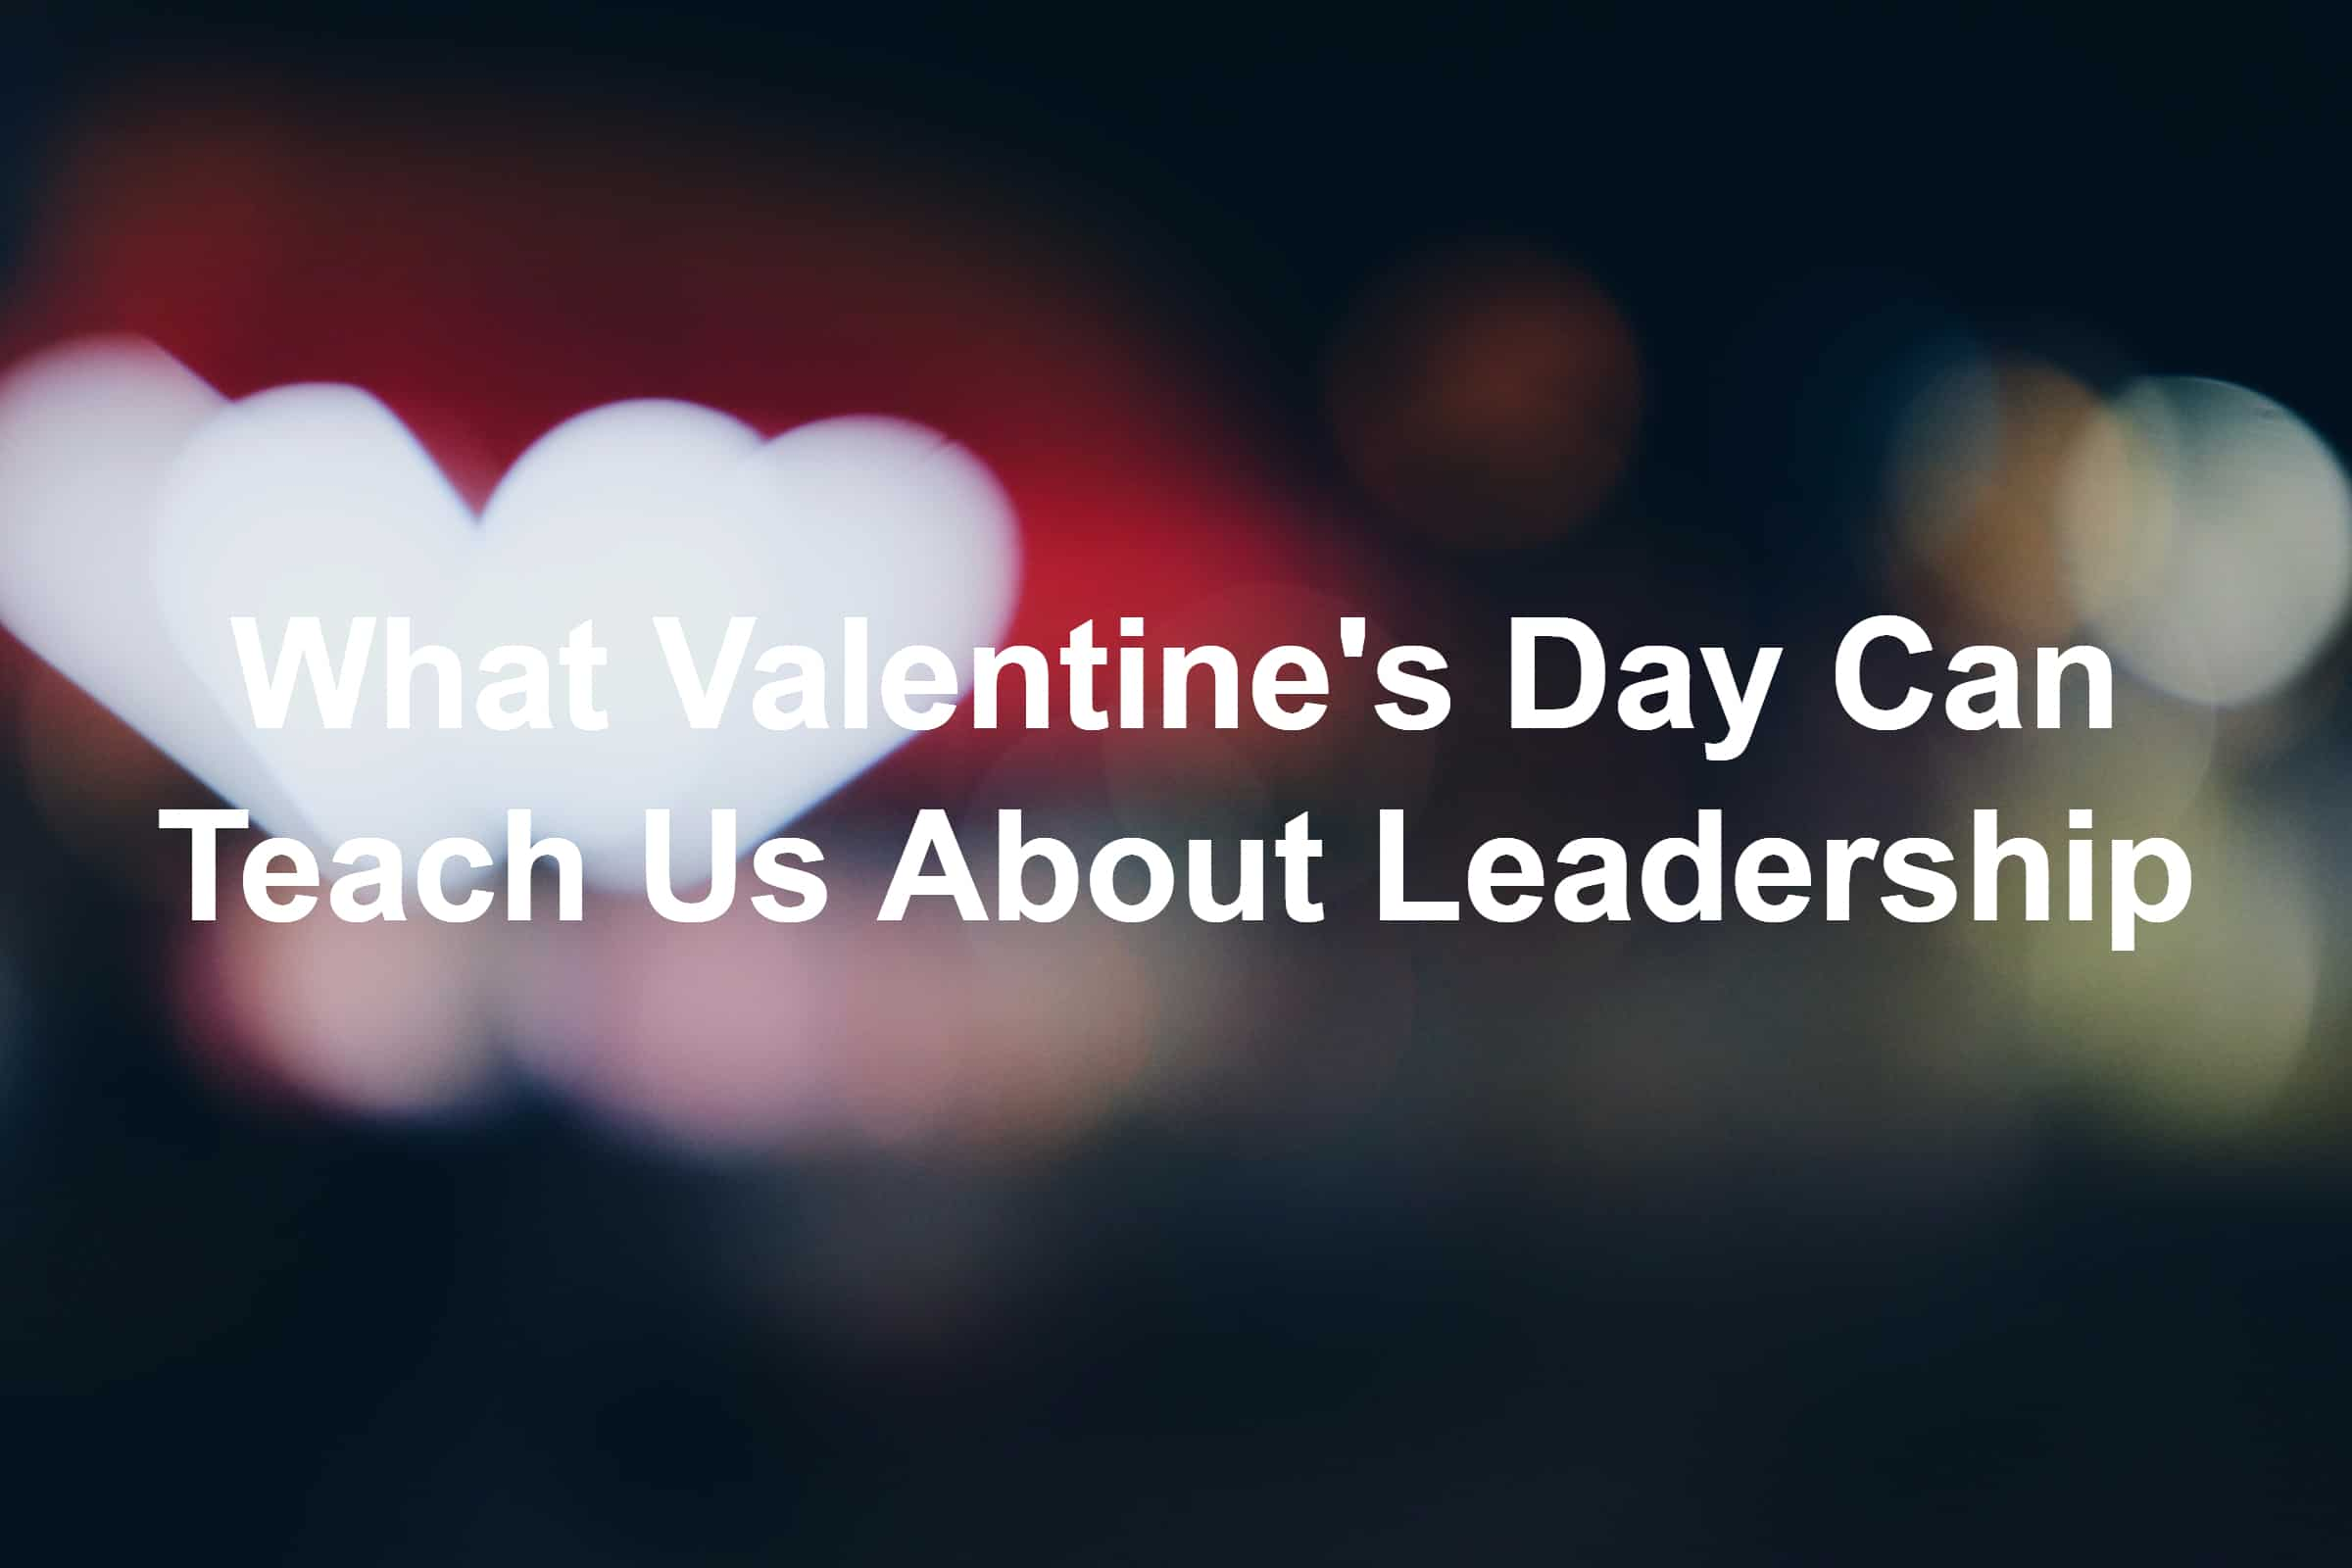 What can Valentine's Day teach us about leadership?